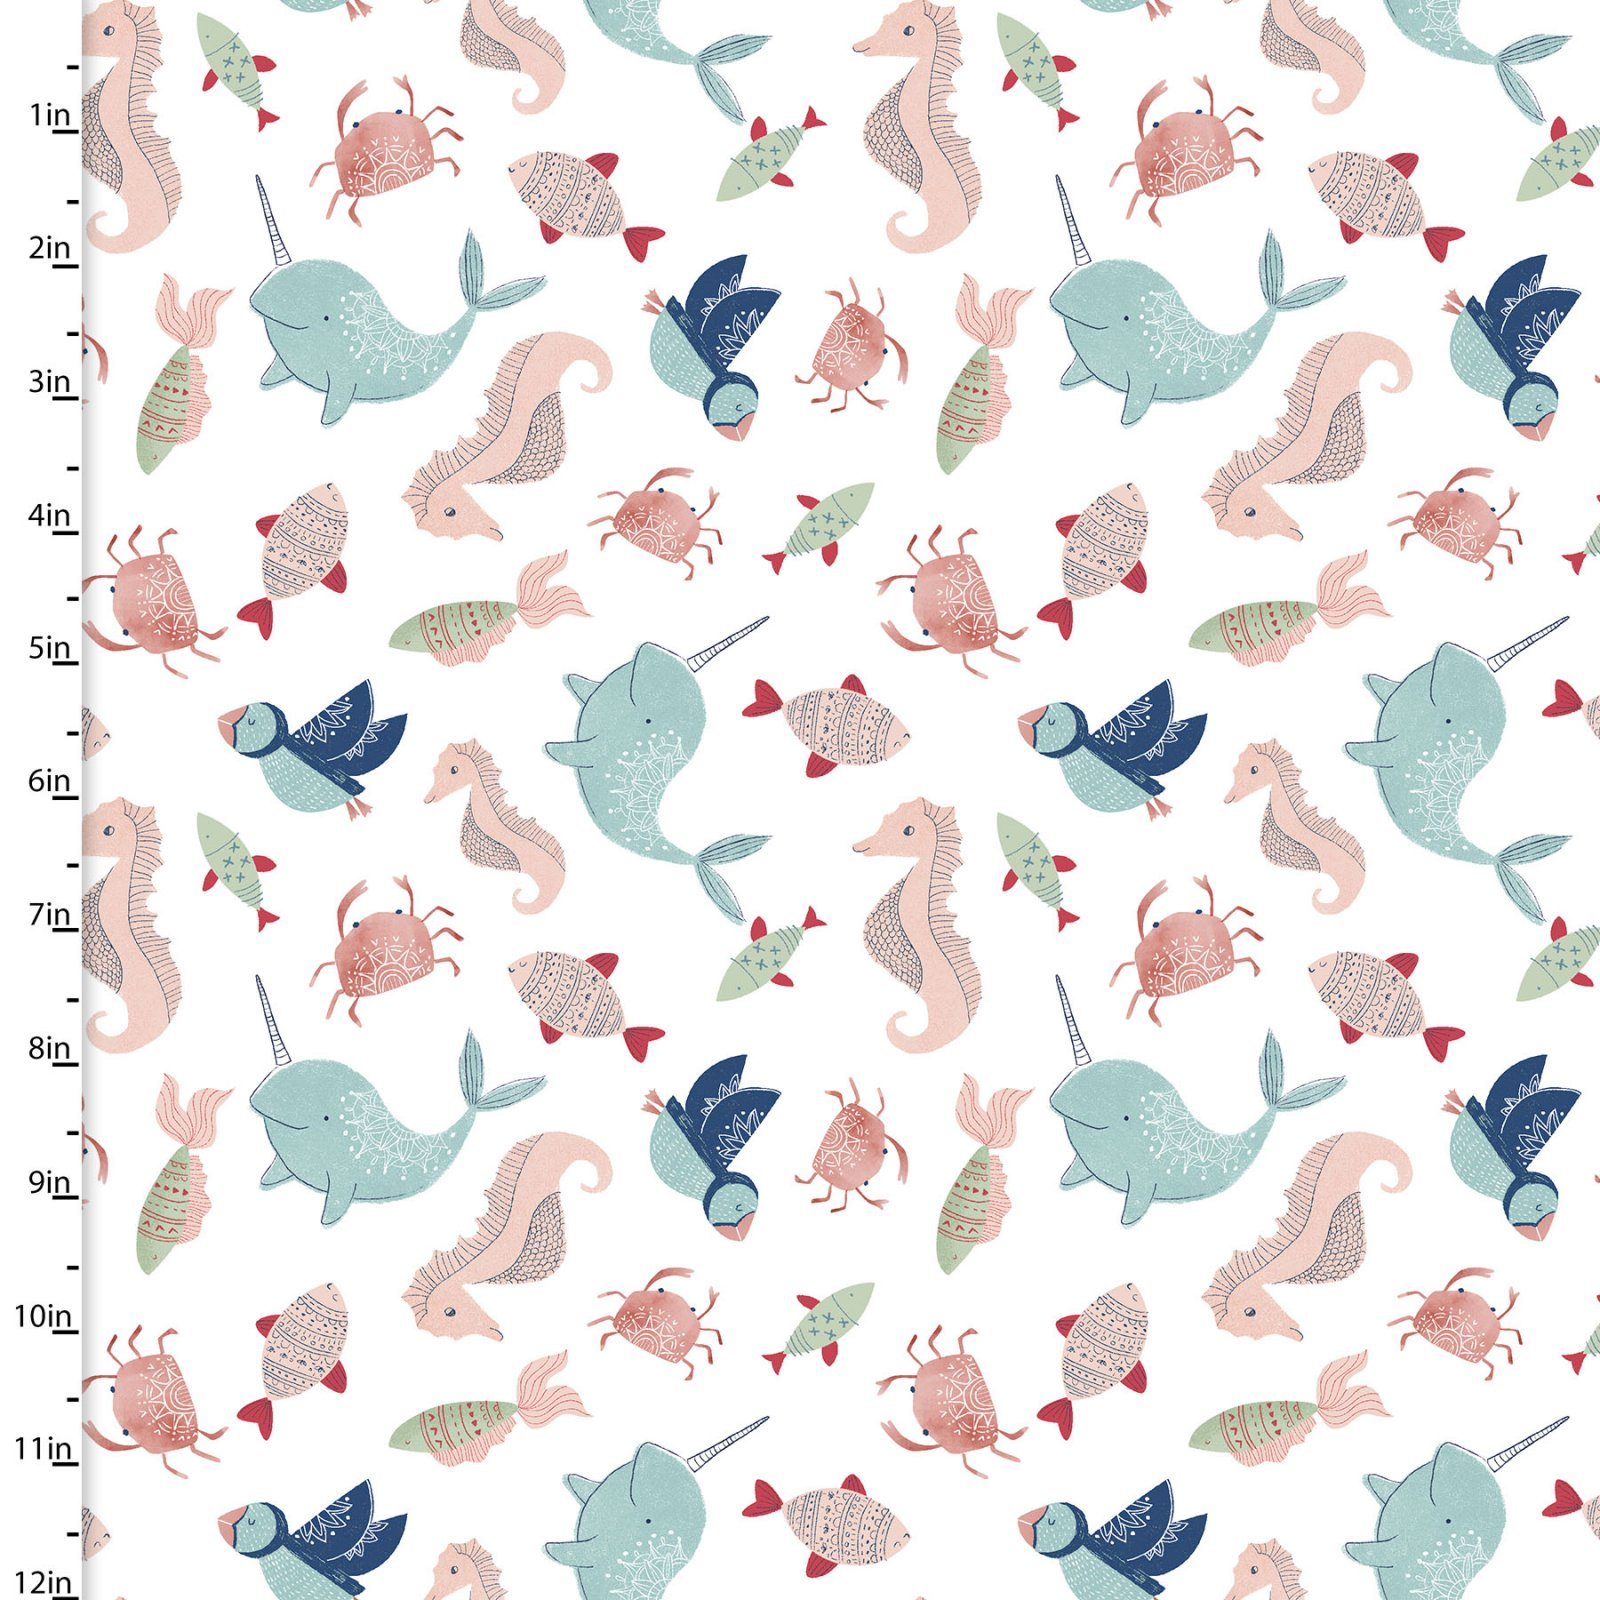 Playful Cuties 3 - Sea Creatures Flannel